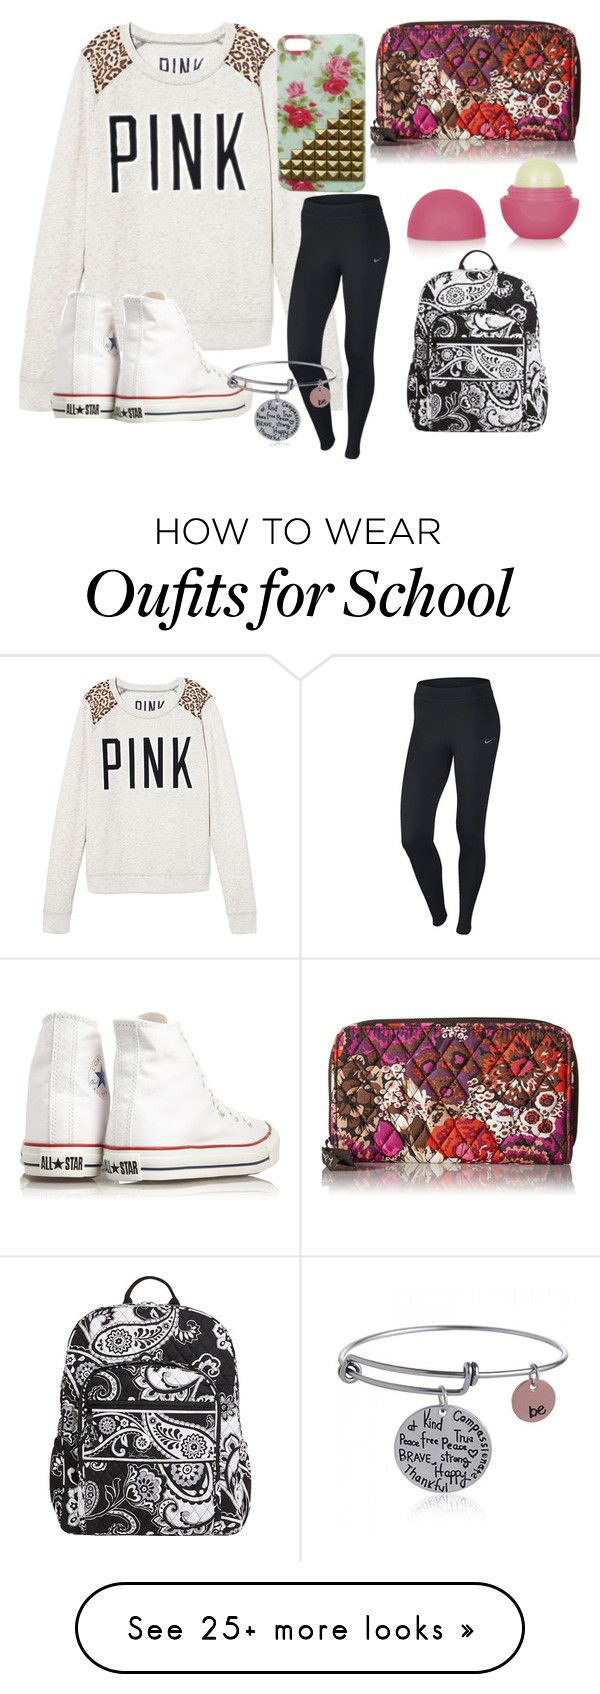 School on Monday  by sarahs2734 on Polyvore featuring Victorias Secret, Converse, Vera Bradley, NIKE, Topshop, womens clothing, womens fashion, women, female and woman